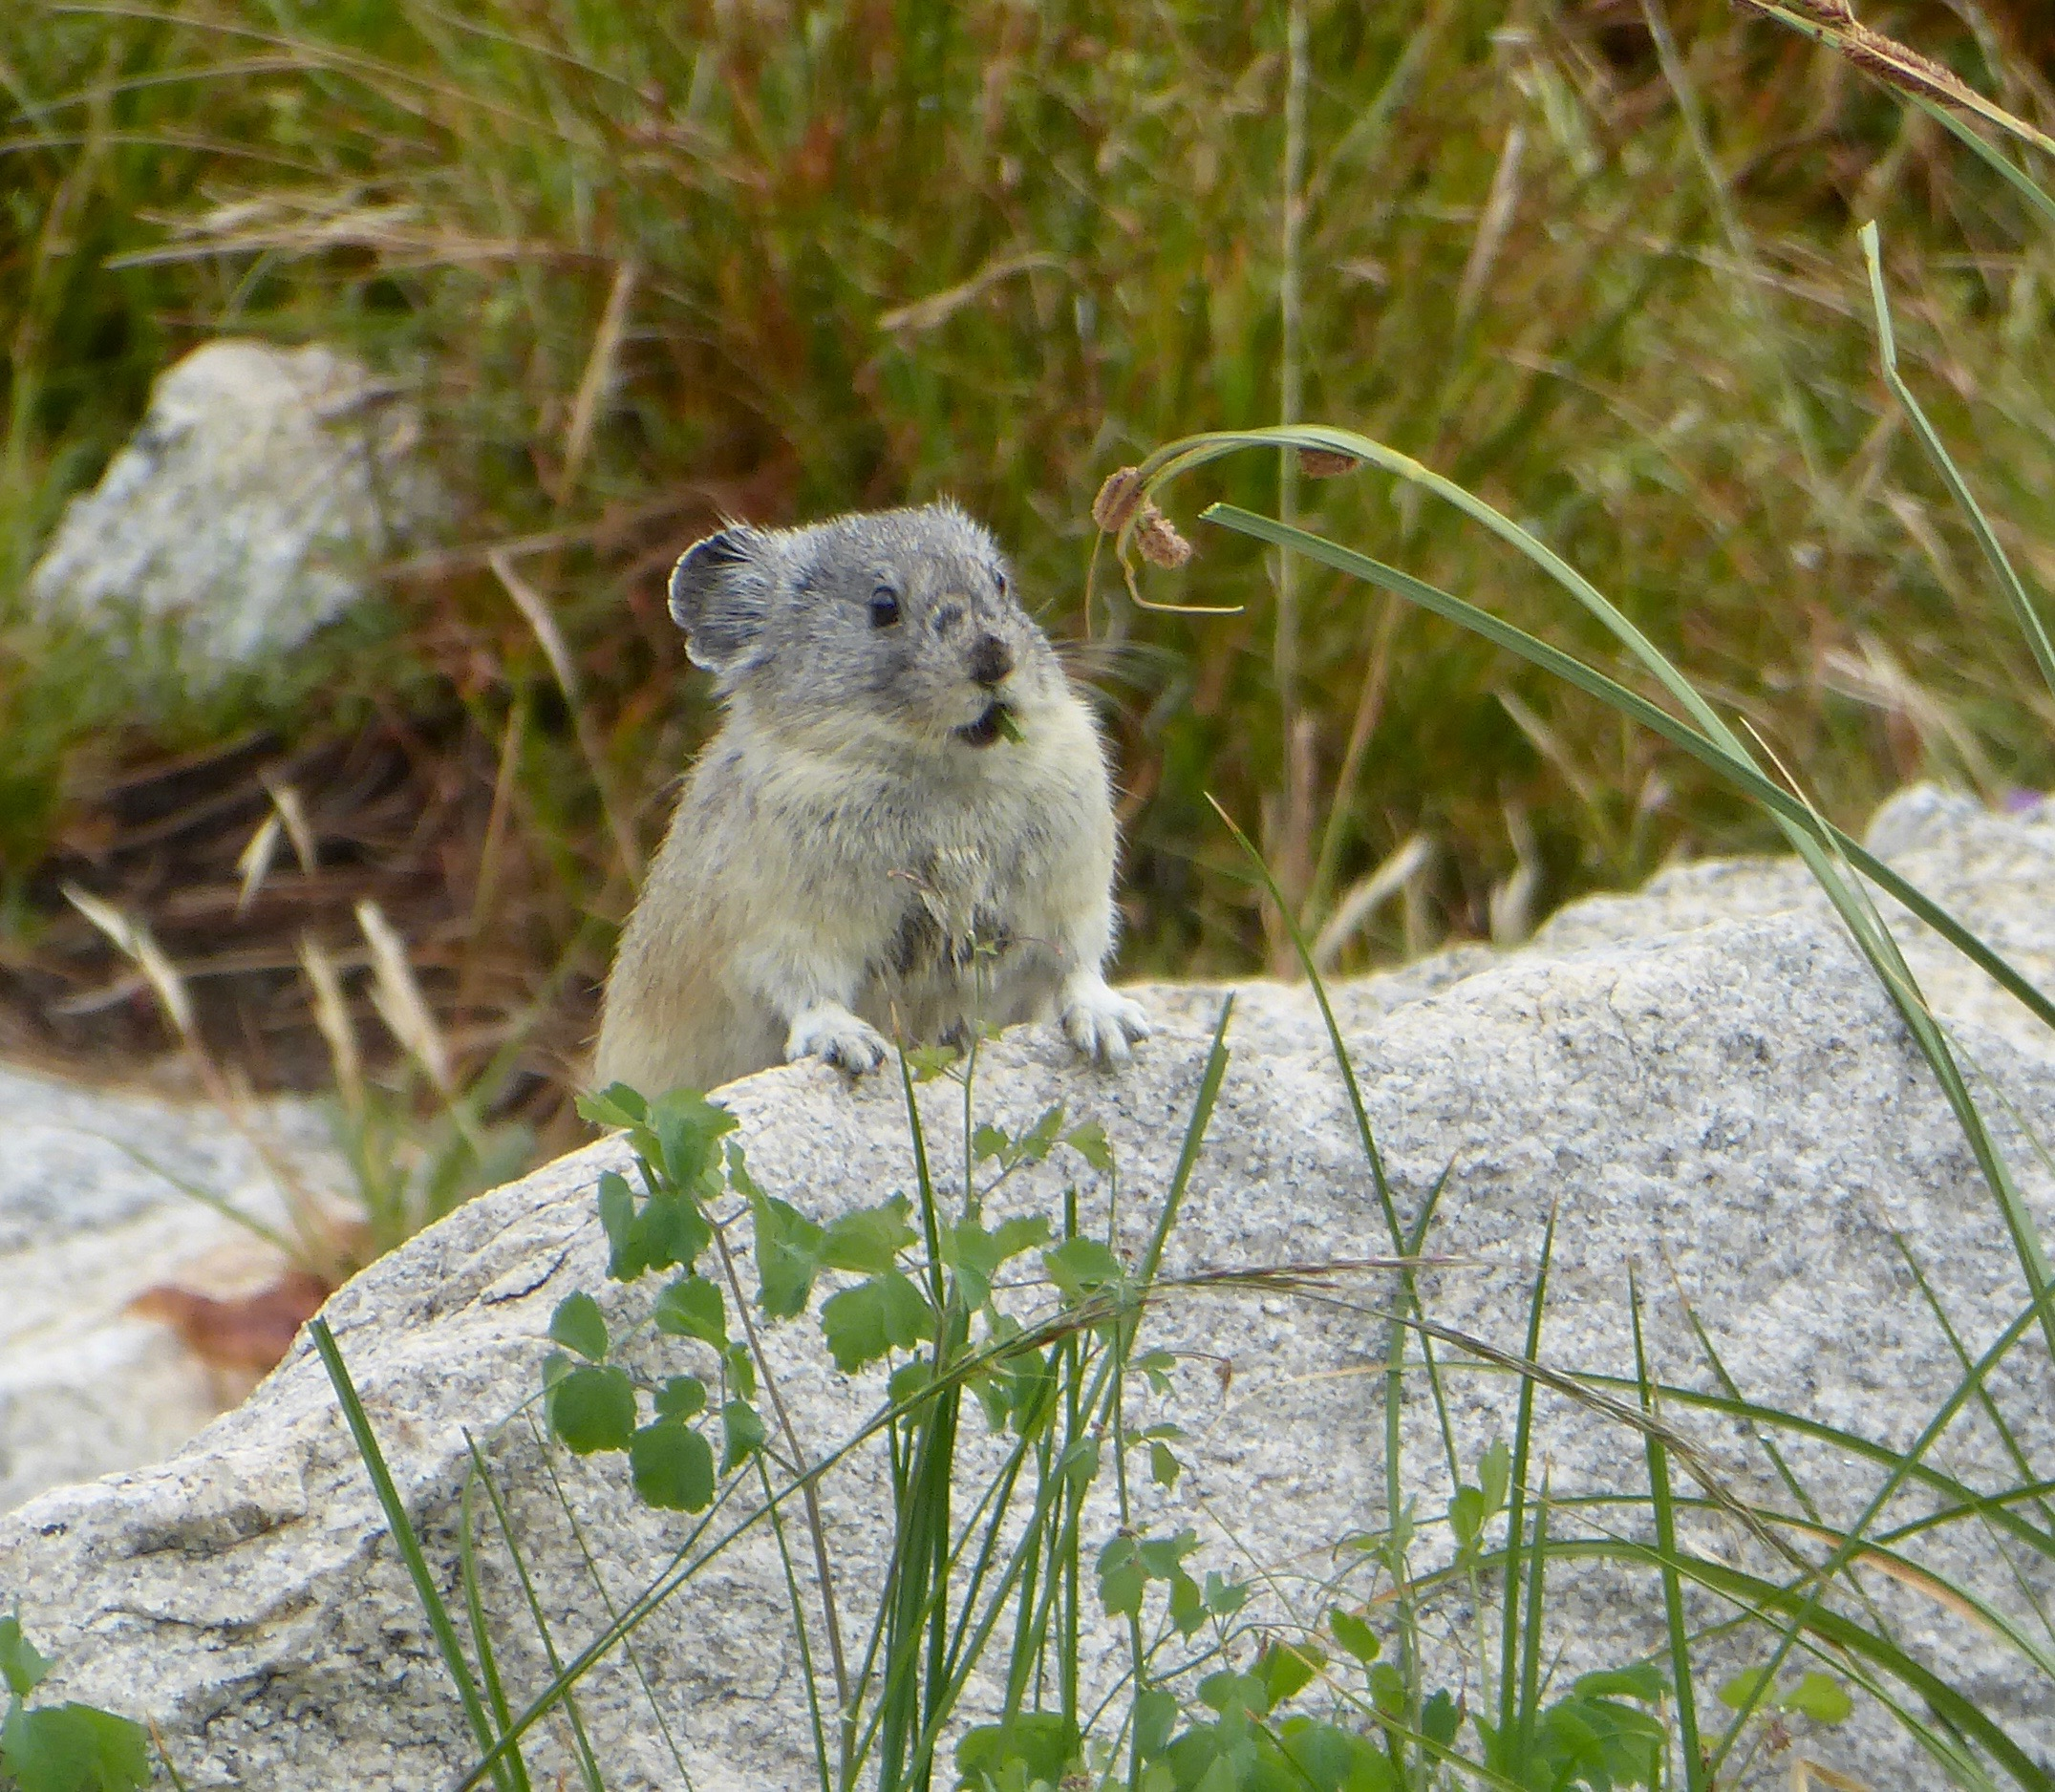 One of our favorite small mammals!